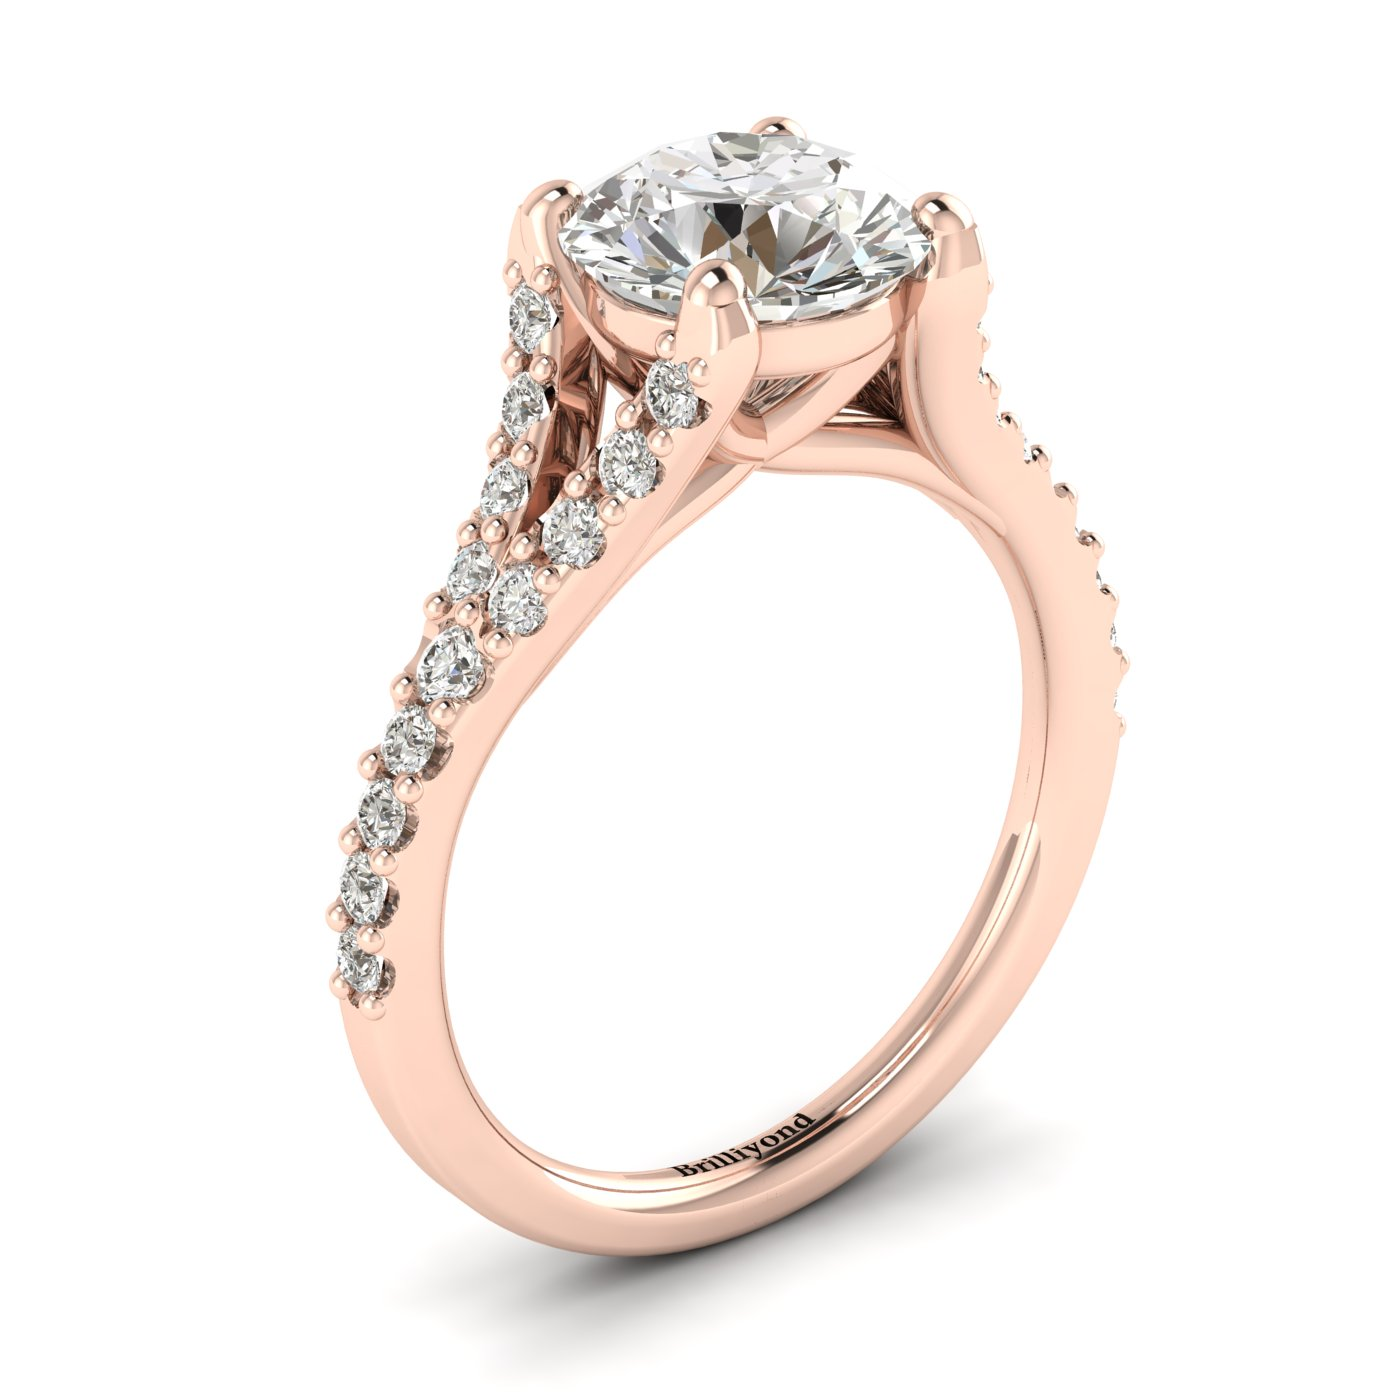 A spectacular 6mm round cut diamond centre stone handset in a solid 18k rose gold band.